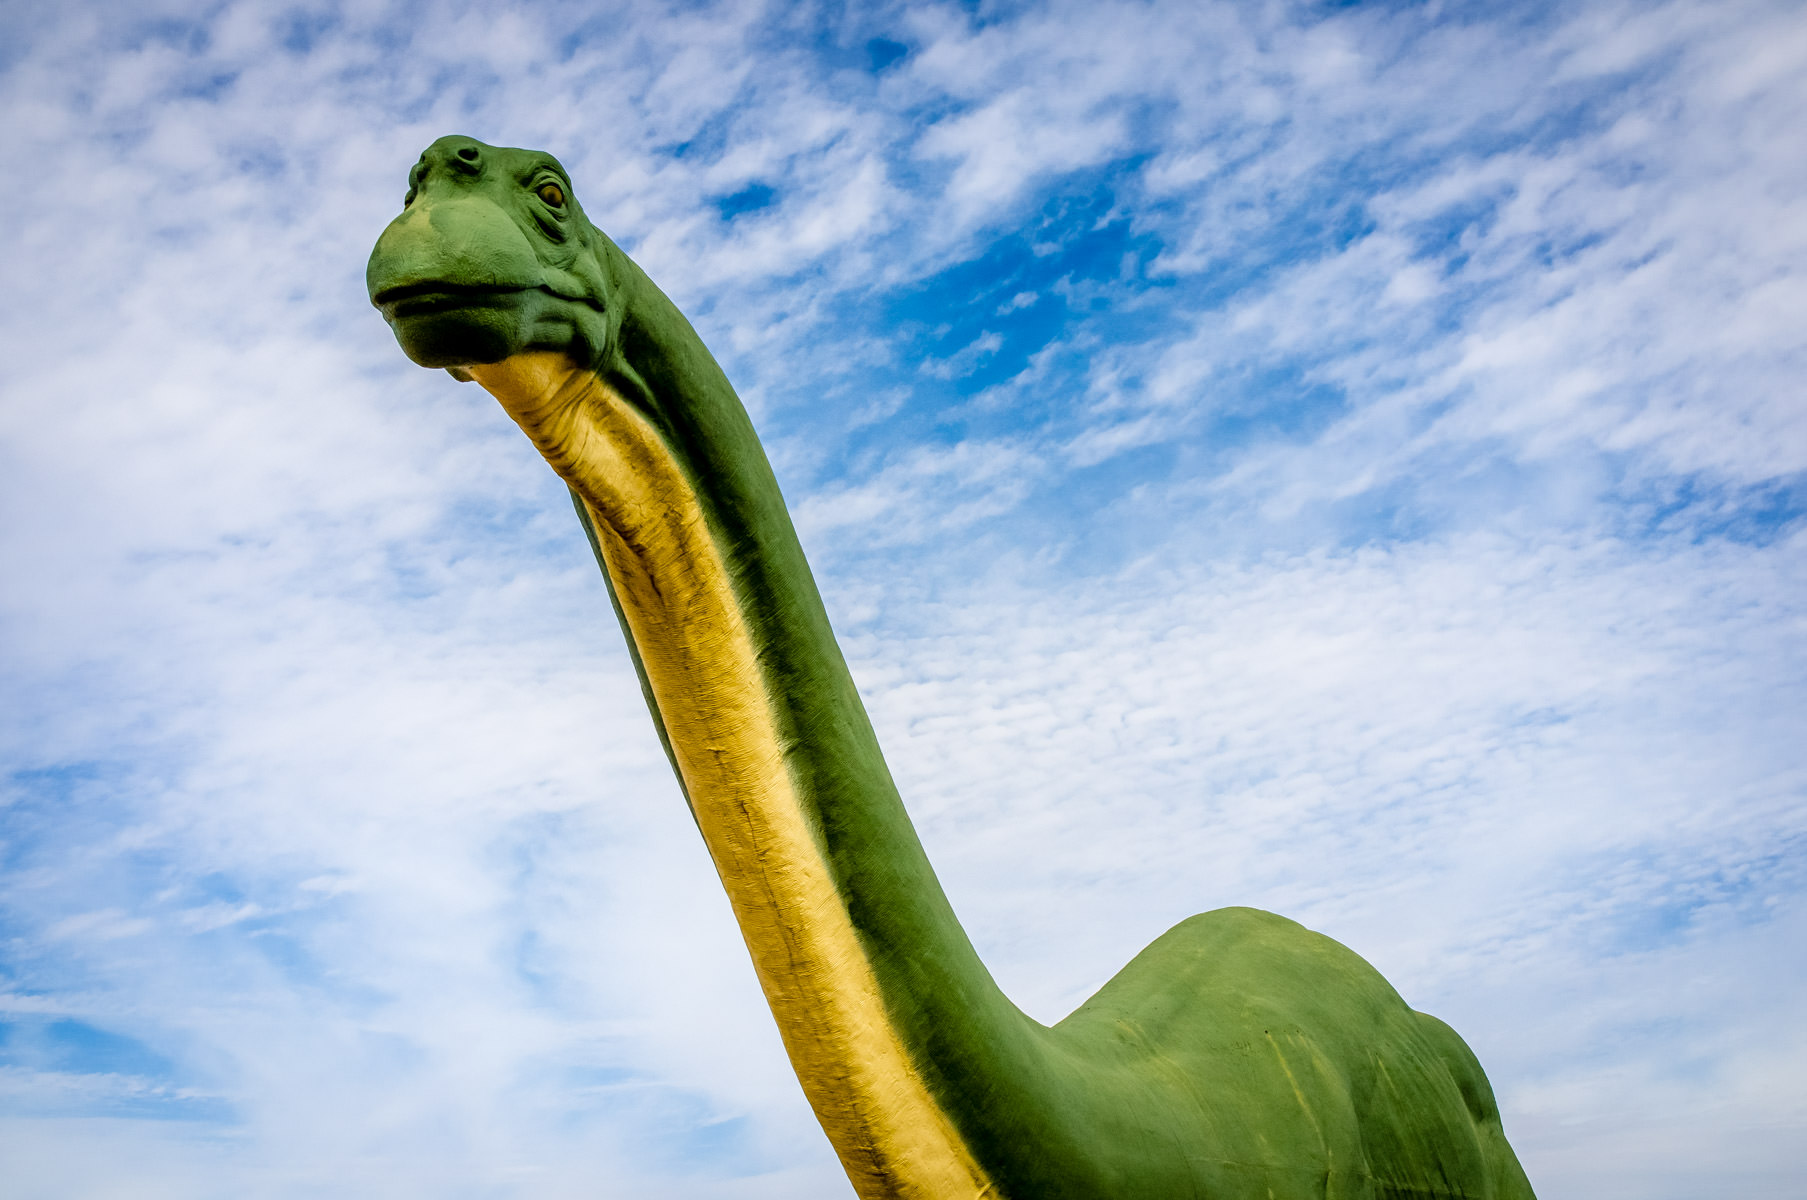 This 70-foot-long statue of a brontosaurus was originally built for Sinclair Dinoland, a Sinclair Oil Company exhibit at the 1964-65 New York World's Fair, but now resides at Texas' Dinosaur Valley State Park.